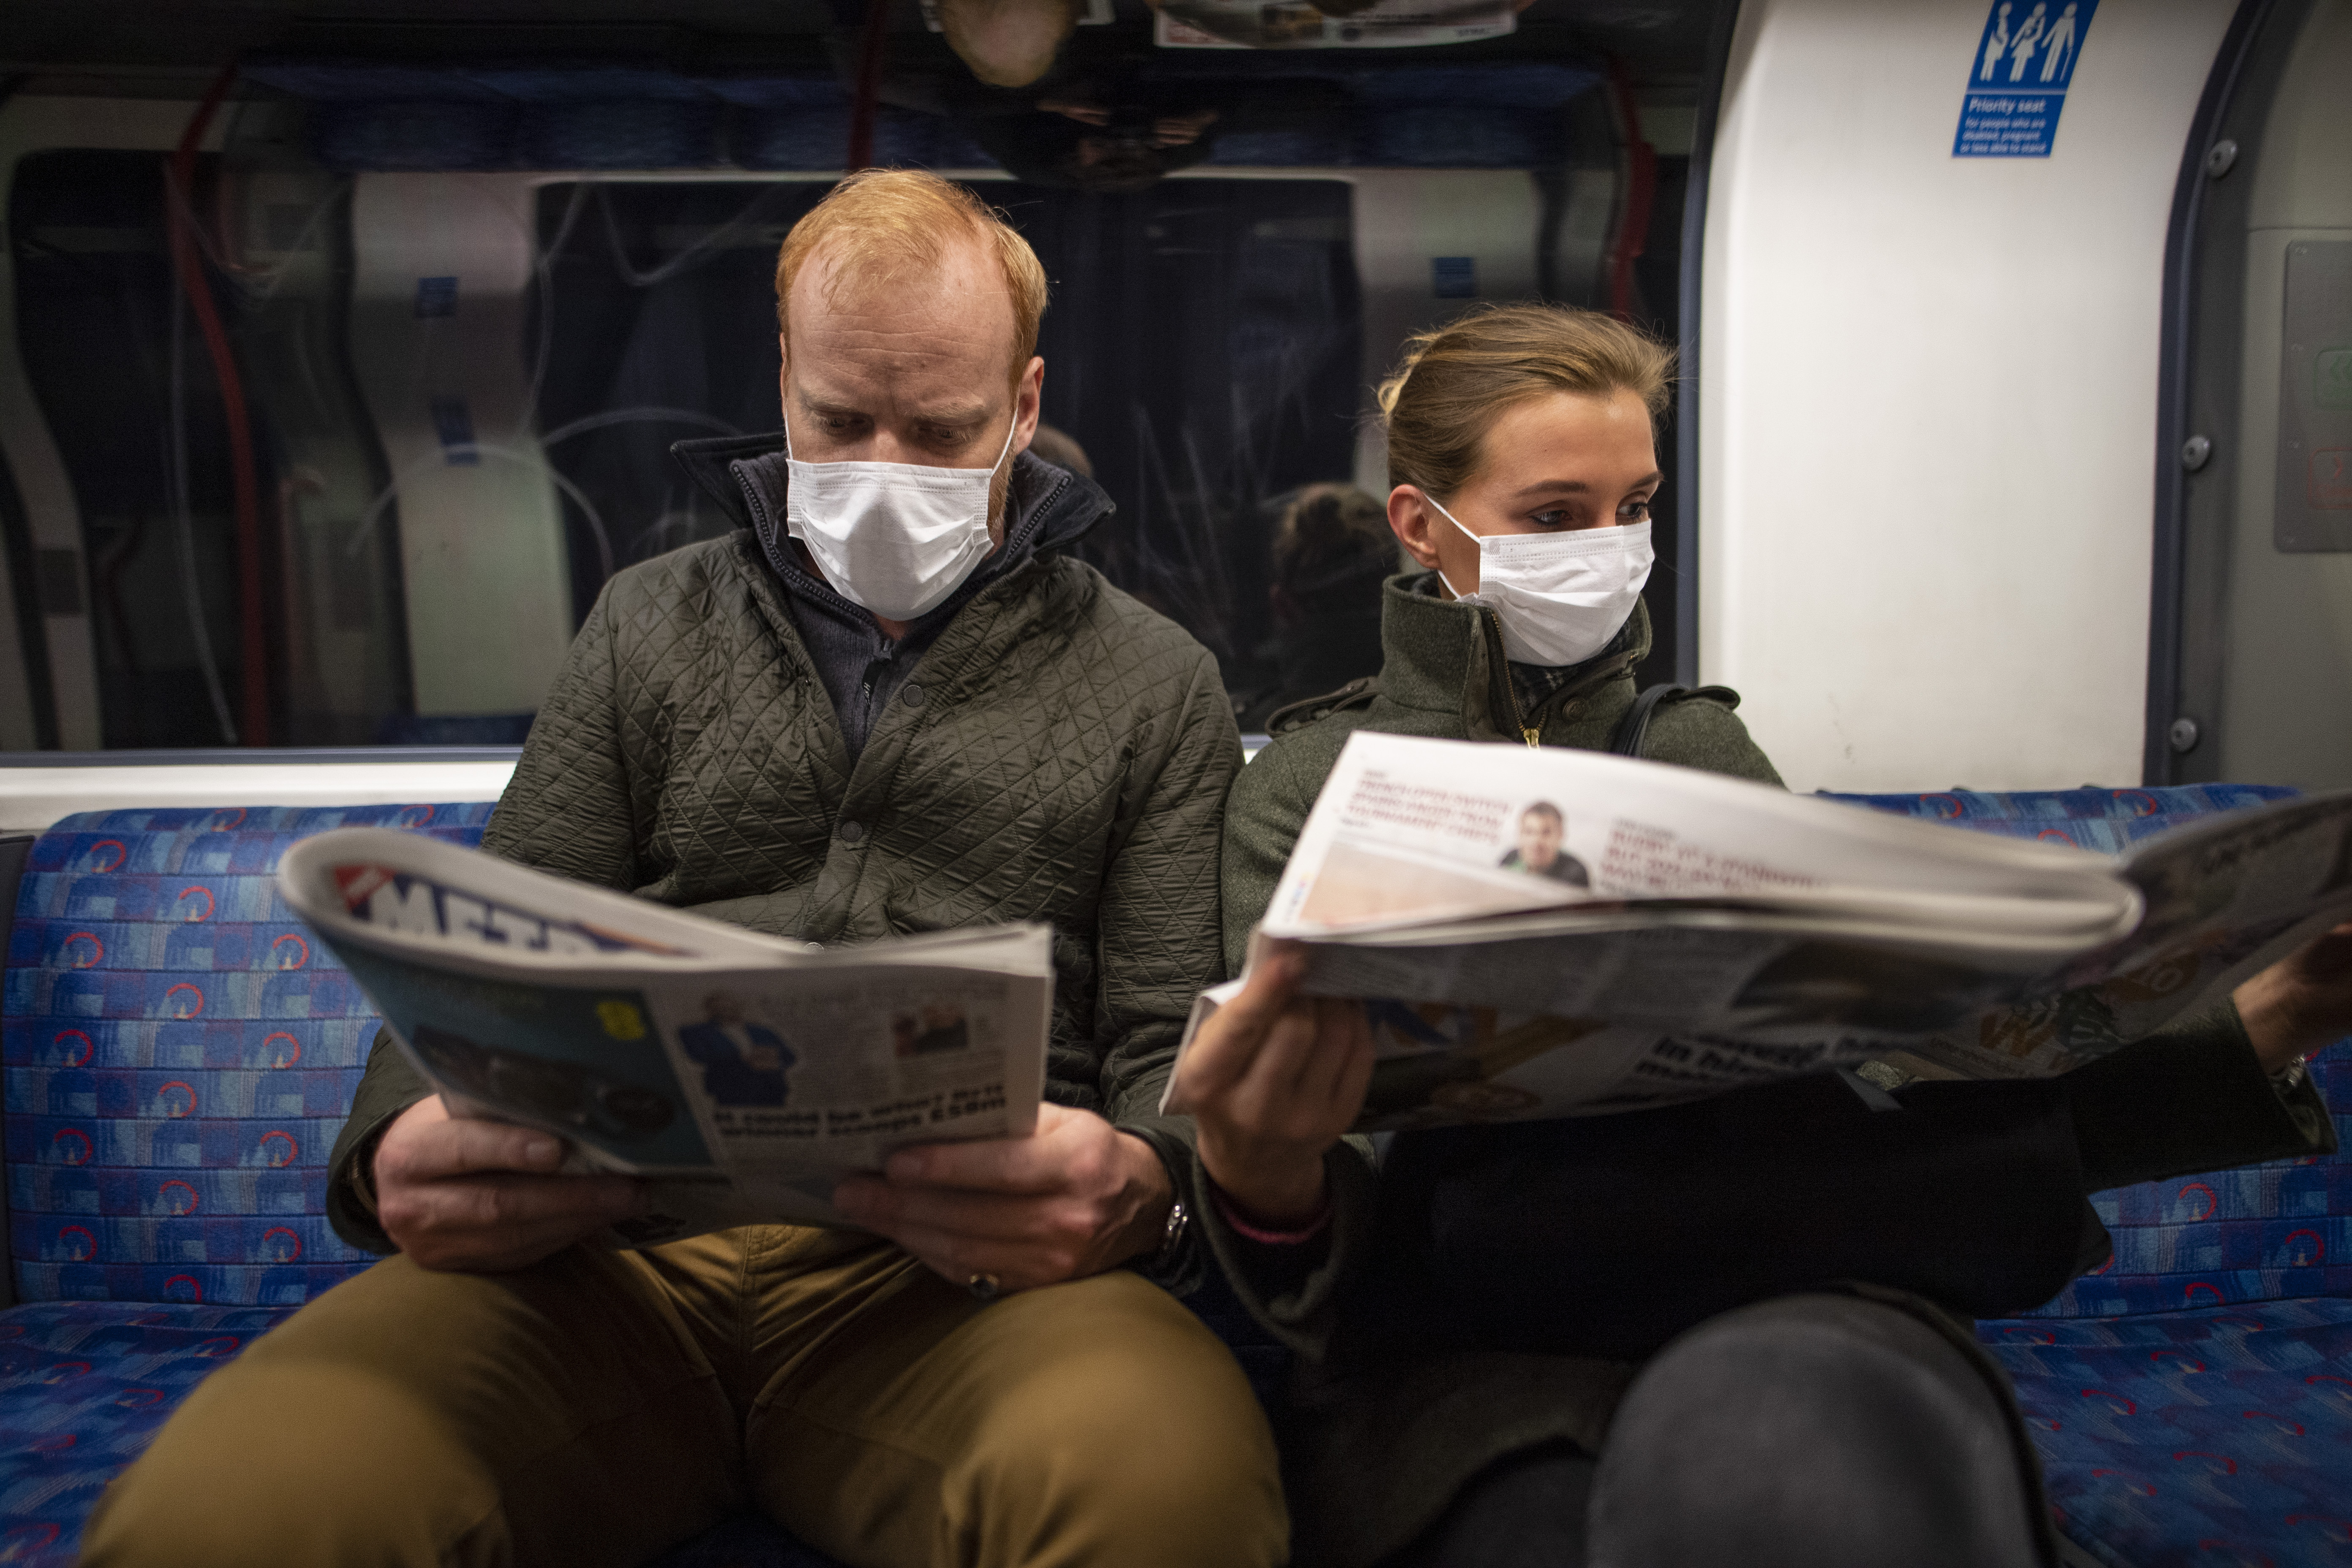 LONDON, ENGLAND - MARCH 19: A couple sit on the Central Line Tube wearing protective face masks while reading a newspaper on March 19, 2020 in London, England. Transport for London announced the closure of up to 40 stations as officials advised against non-essential travel. Bus and London Overground service will also be reduced. (Photo by Justin Setterfield/Getty Images)